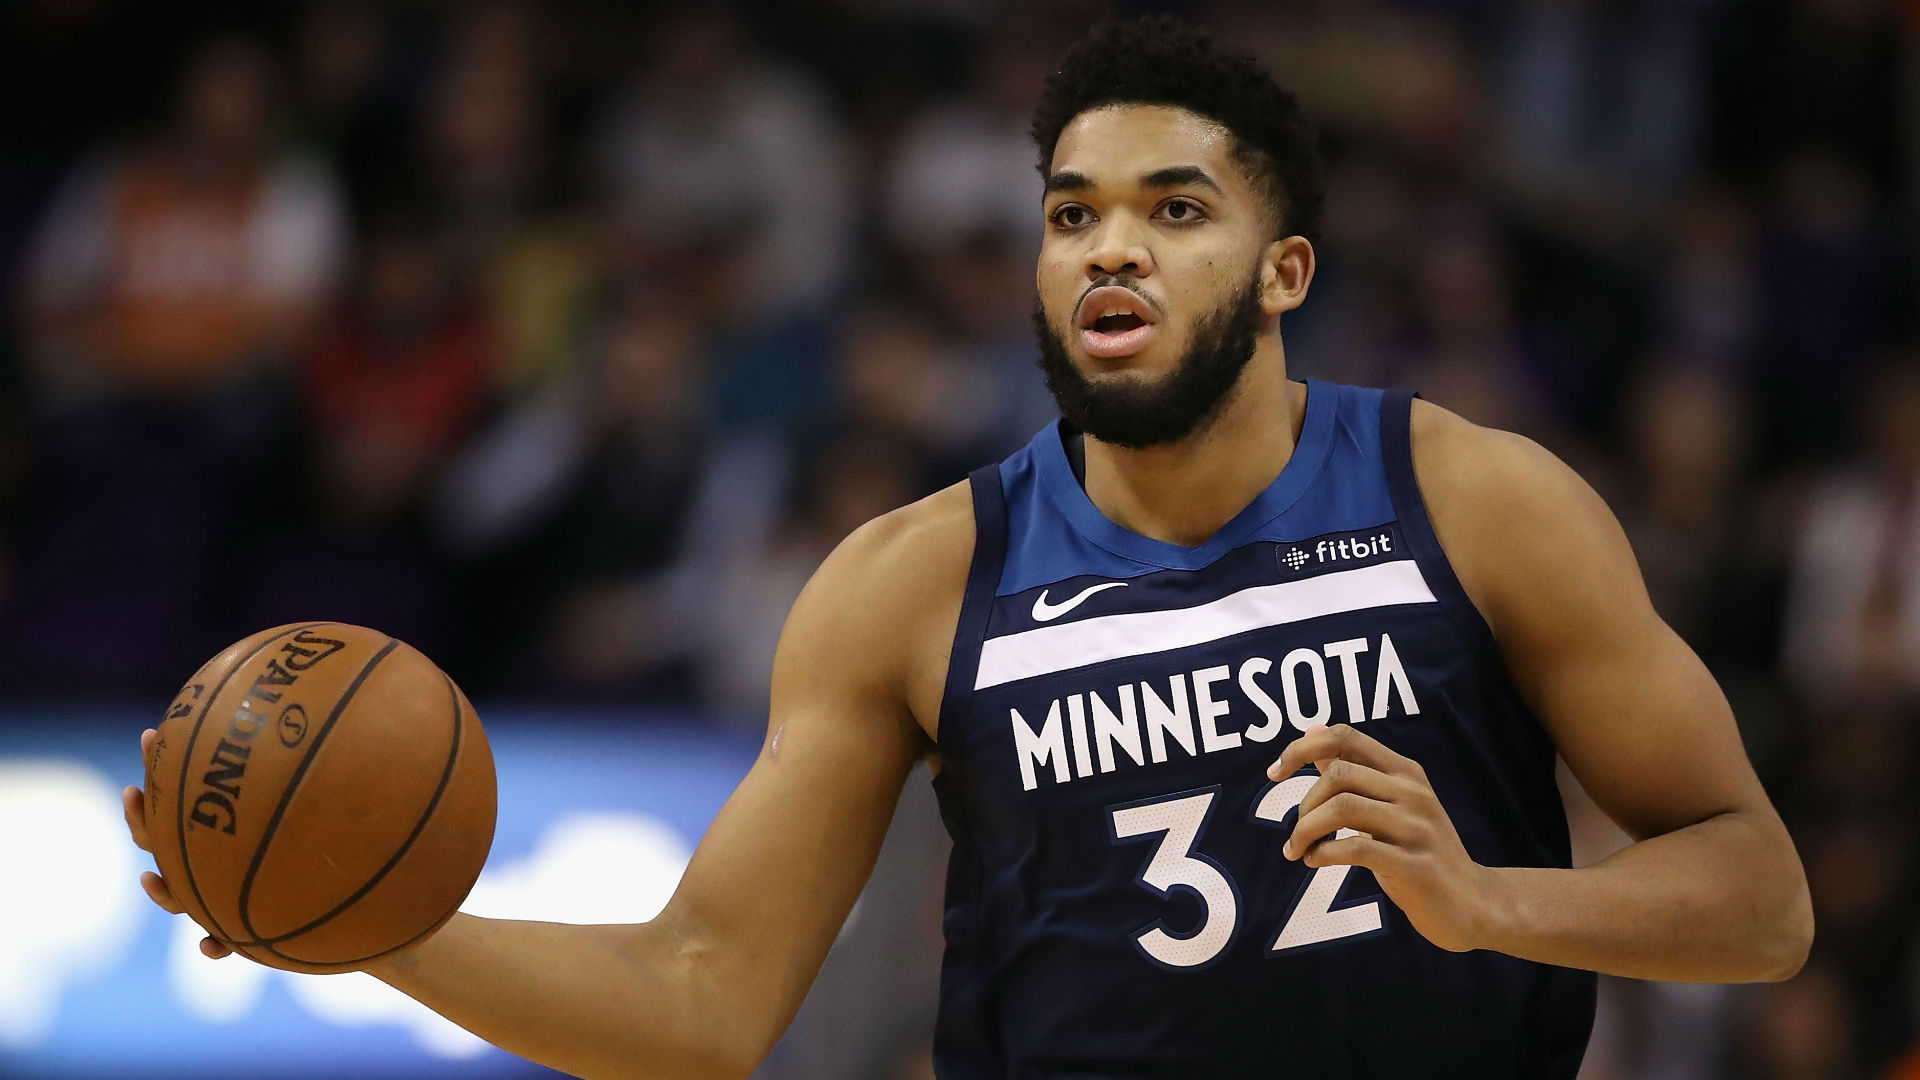 Coronavirus: Mother of Timberwolves star Karl-Anthony Towns dies from COVID-19